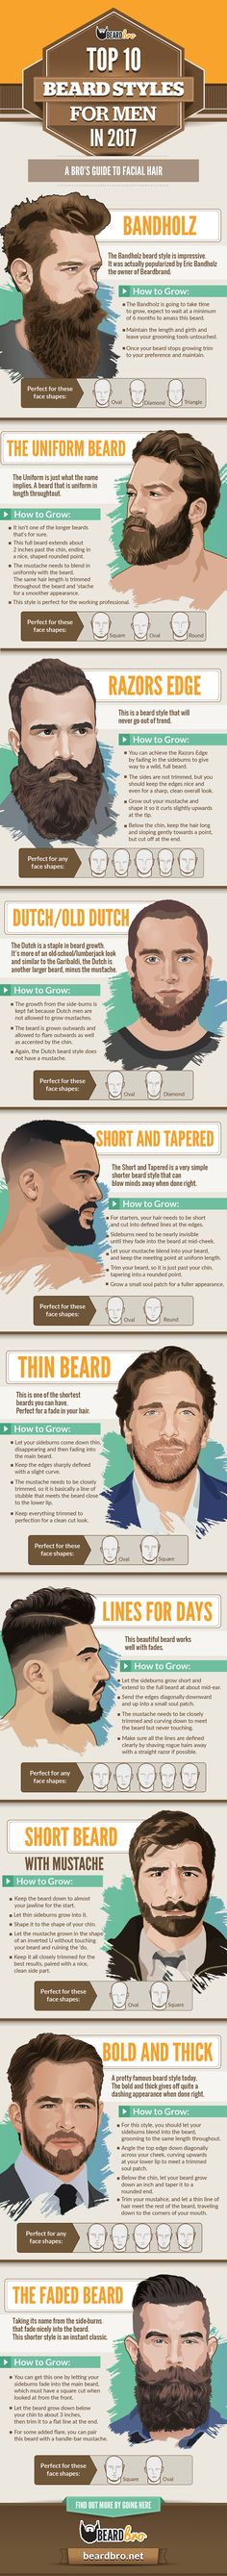 Top 10 Beard Styles in 2017. #beard #styles